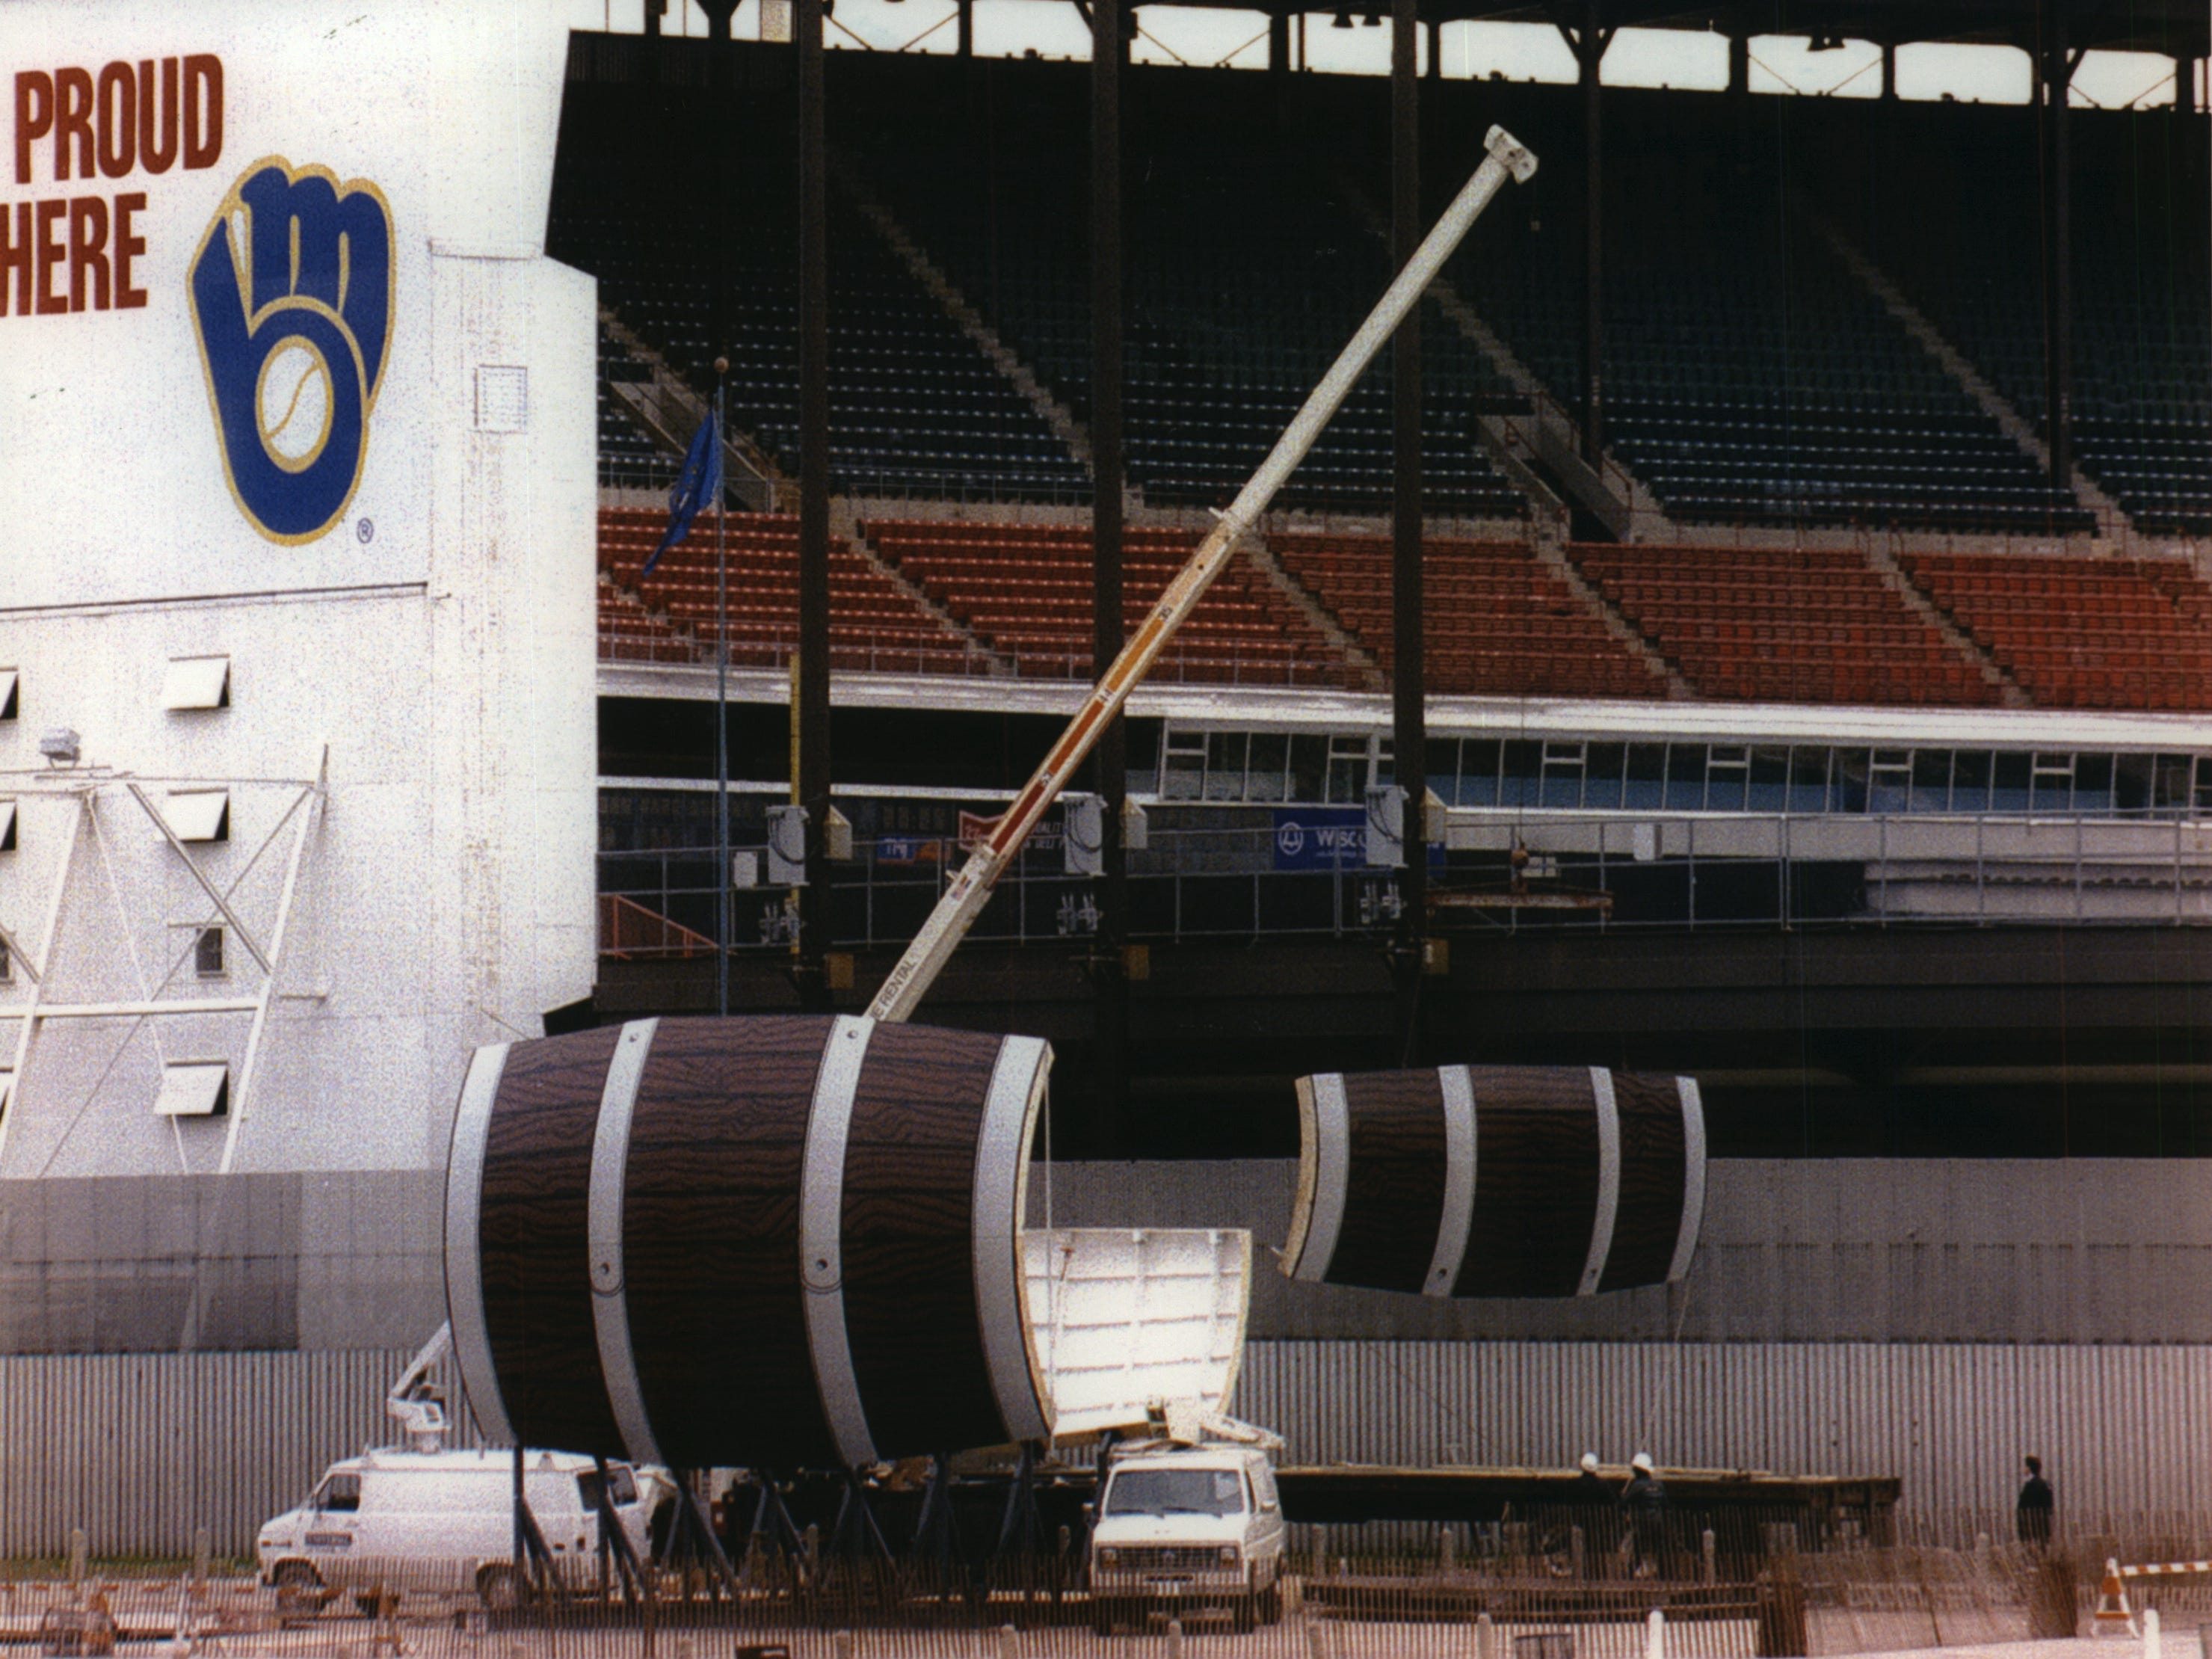 A Derse Inc. crane lifts a section of Bernie Brewer's new beer-barrel mug into place at County Stadium on May 17, 1993. This photo was published in the May 18, 1993, Milwaukee Sentinel.